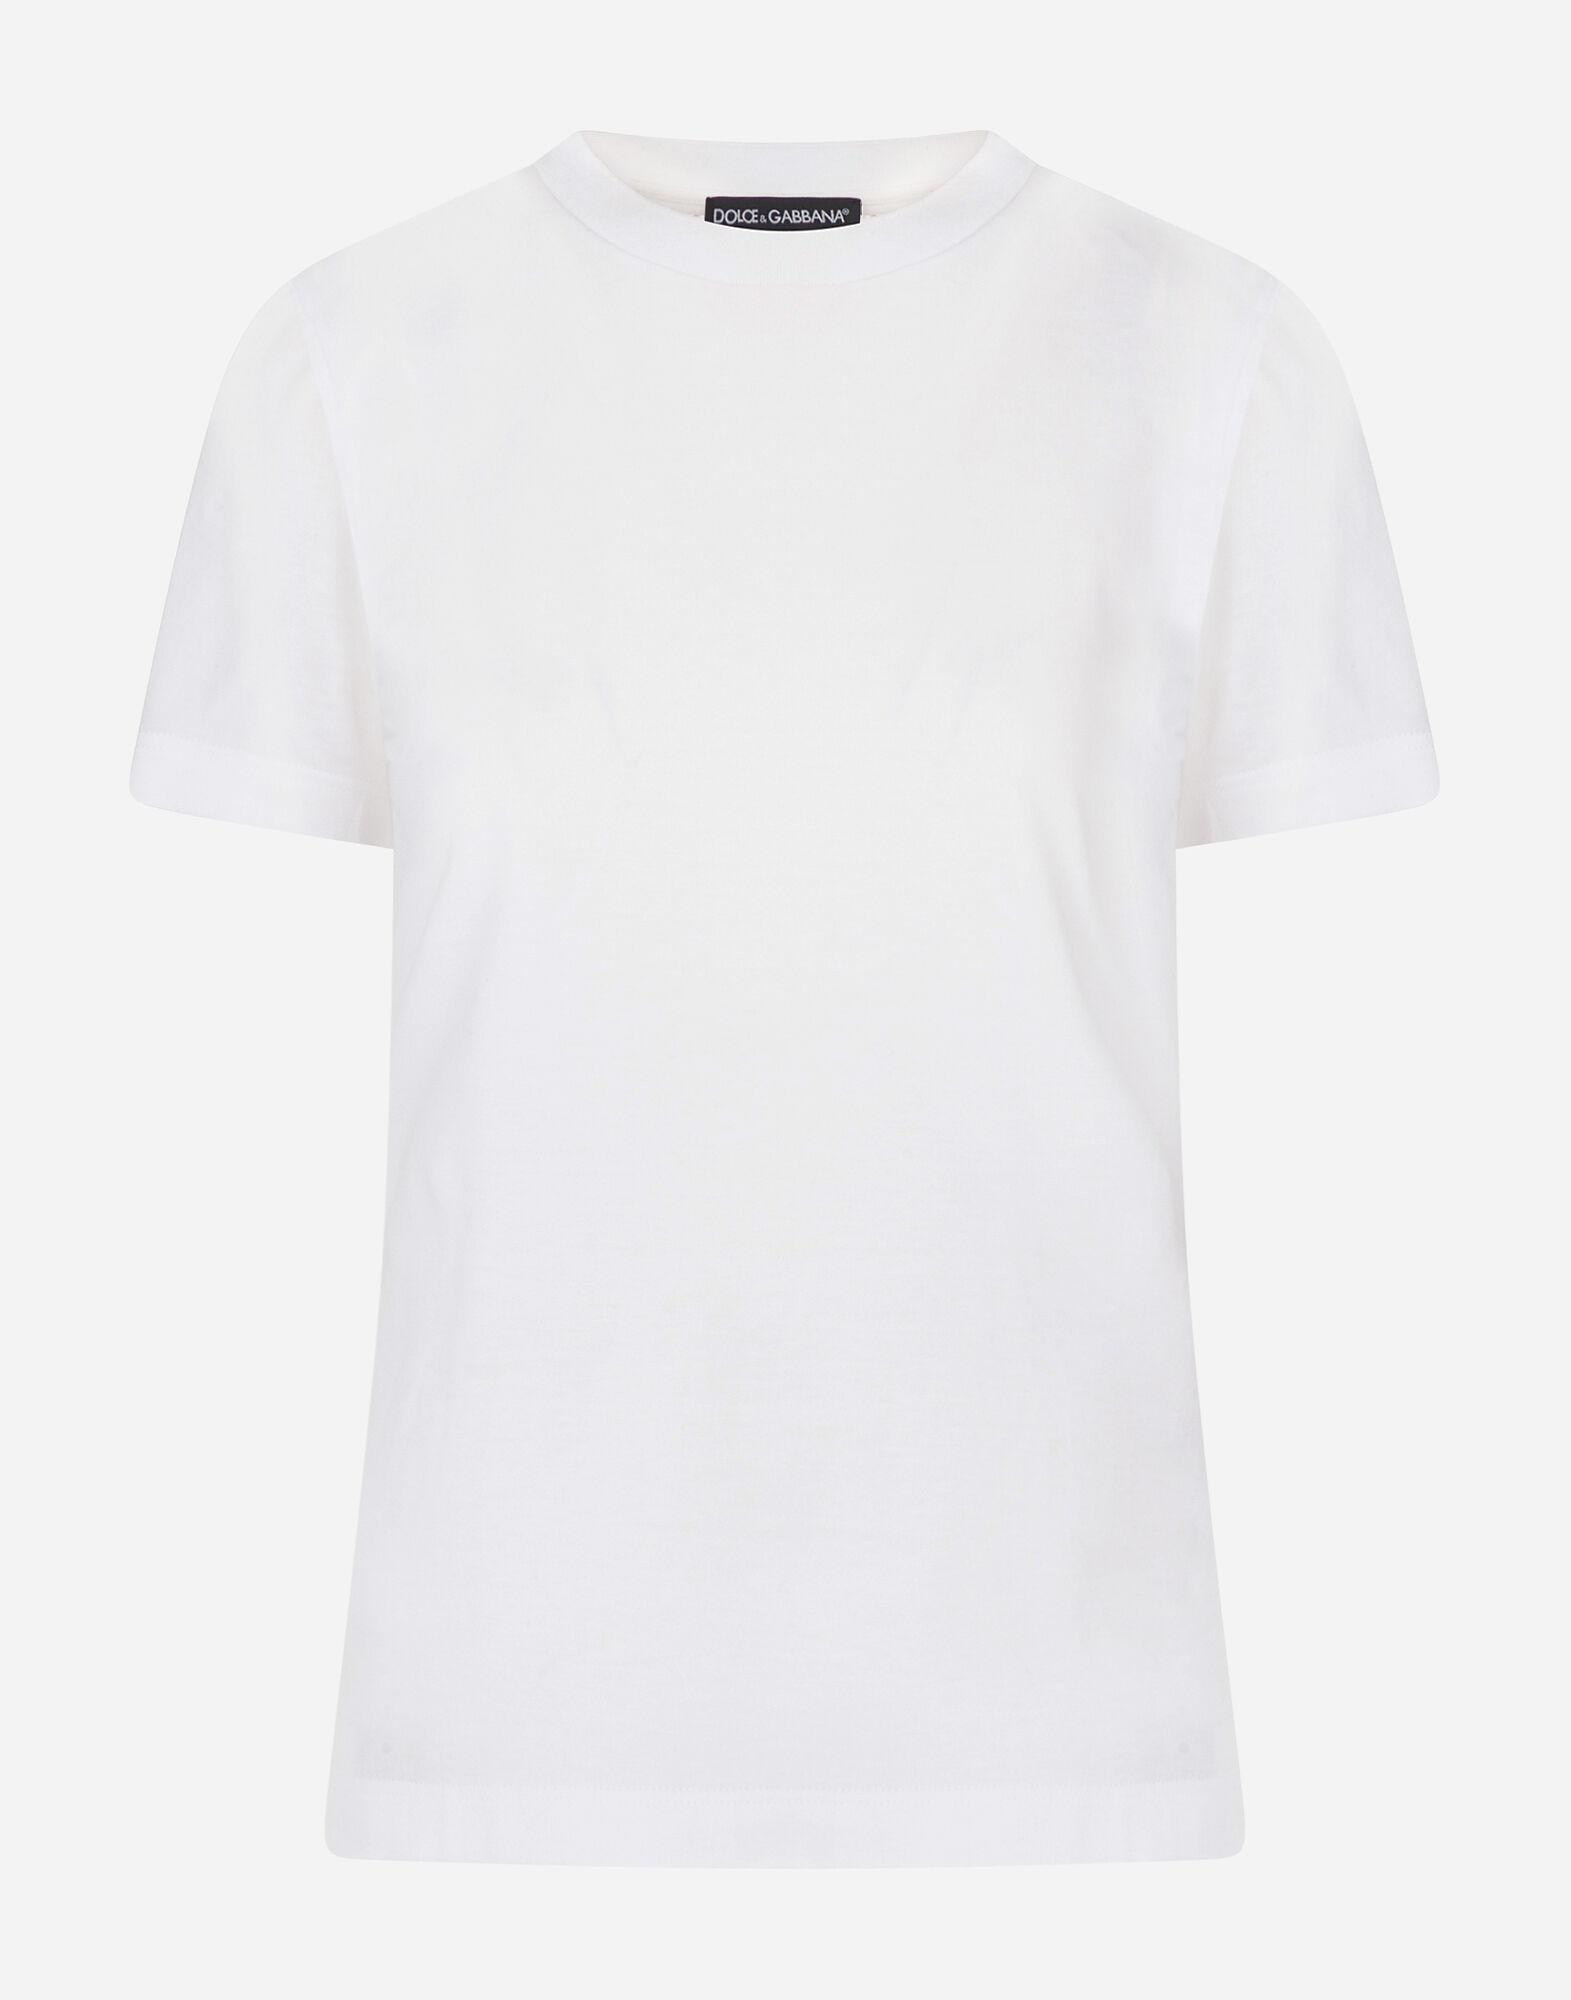 Jersey t-shirt with embroidered label 4